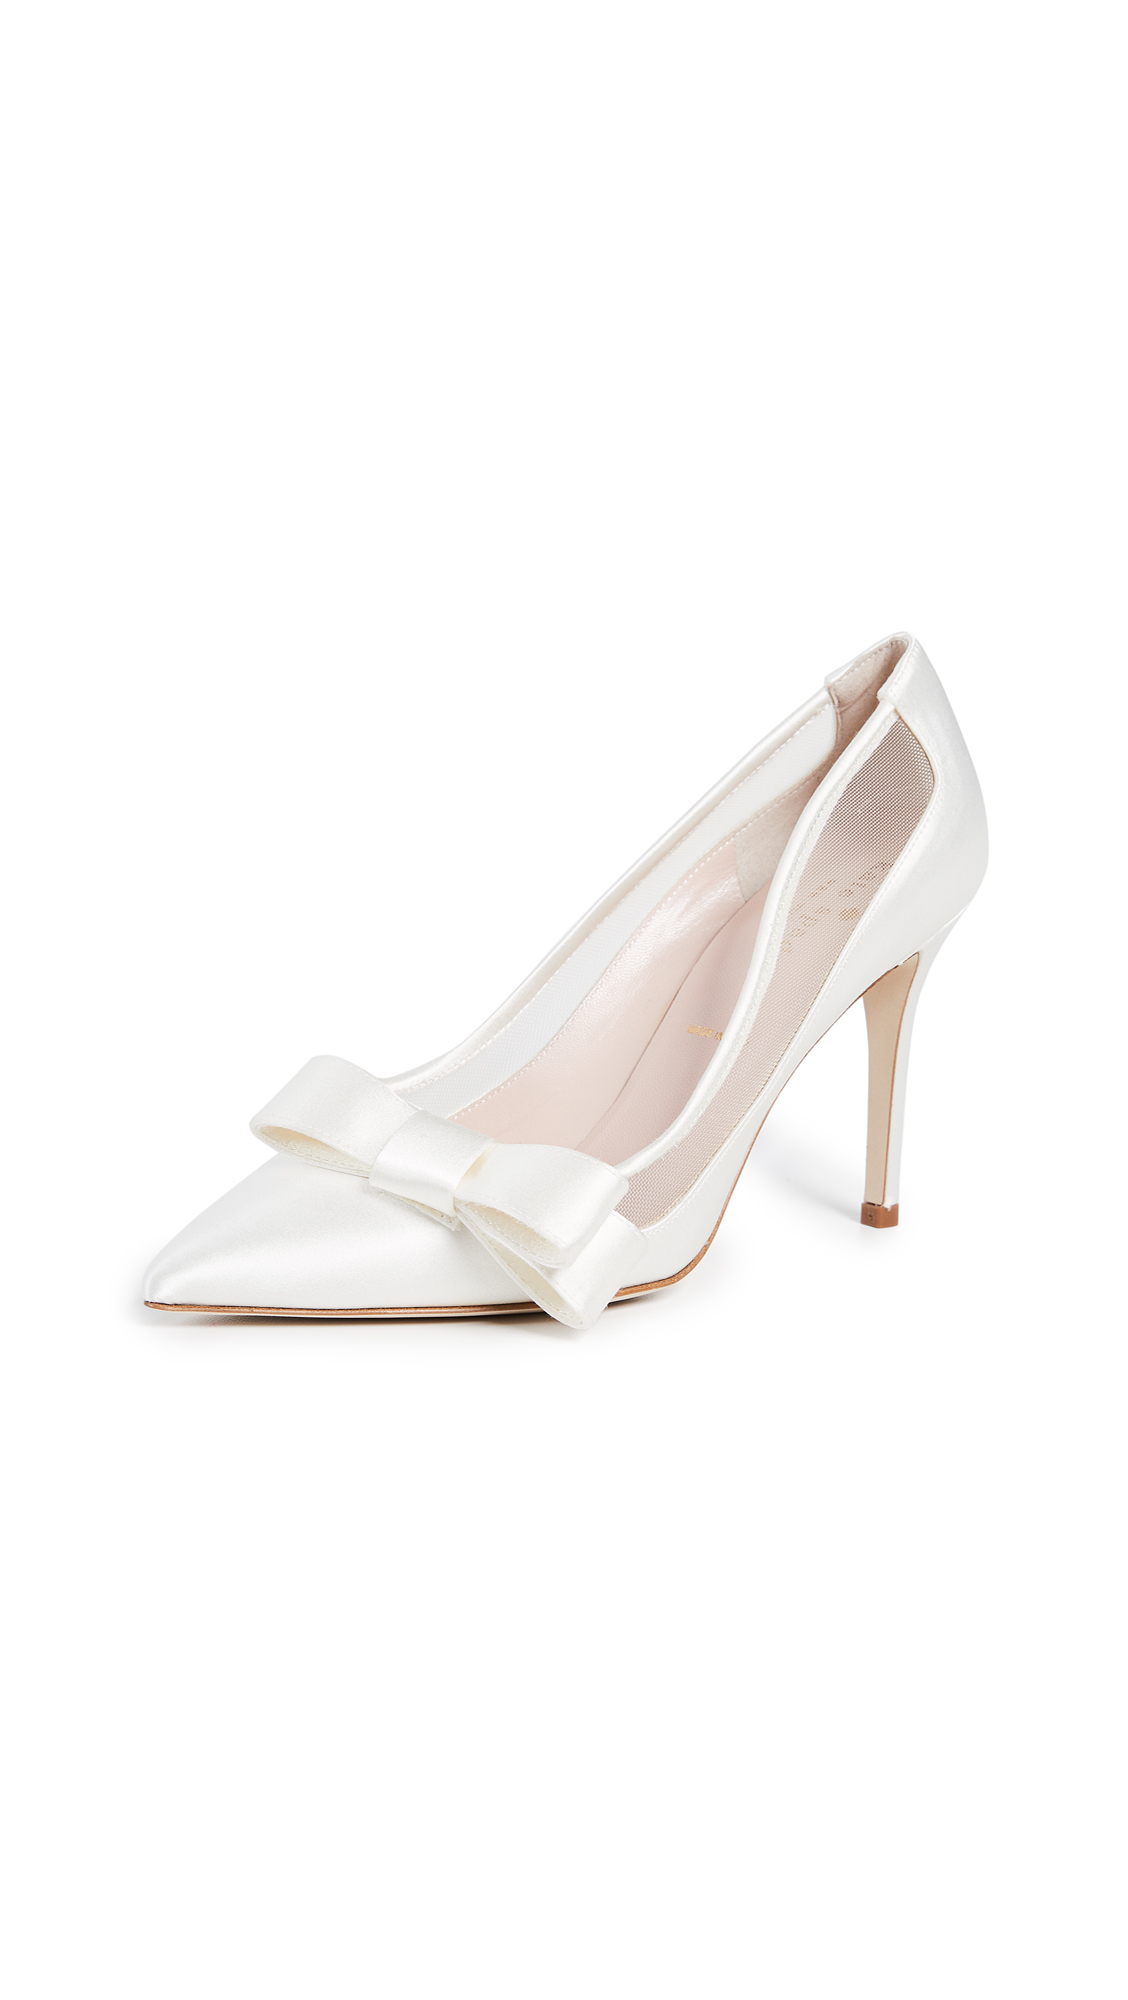 Kate Spade New York Lizzi Point Toe Pumps - Ivory